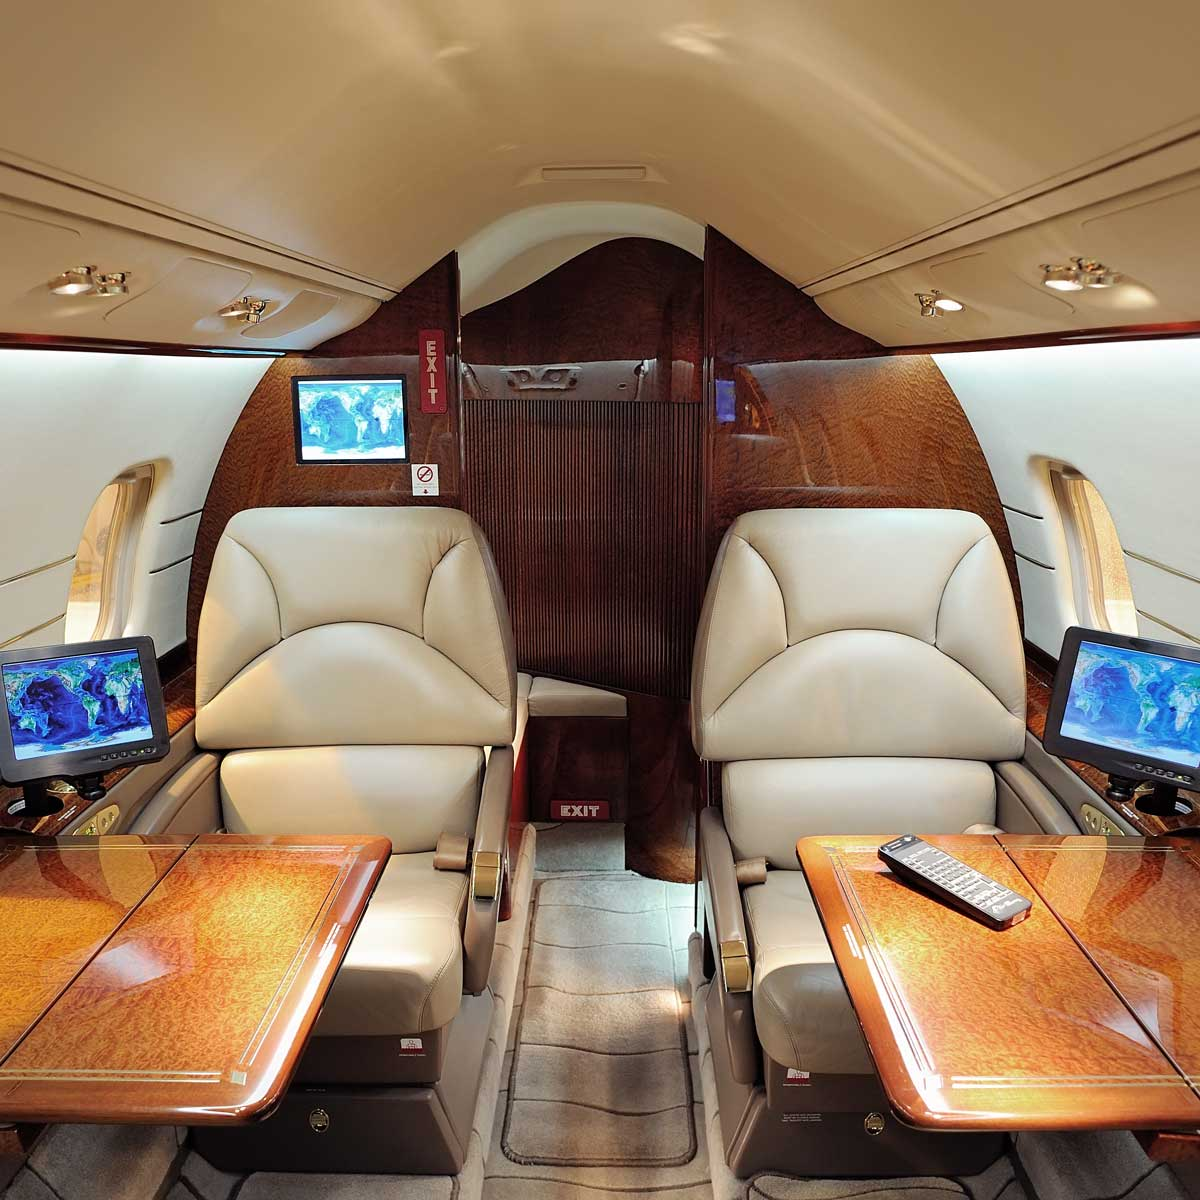 aircraft modification services stc twenty one avionic interiors